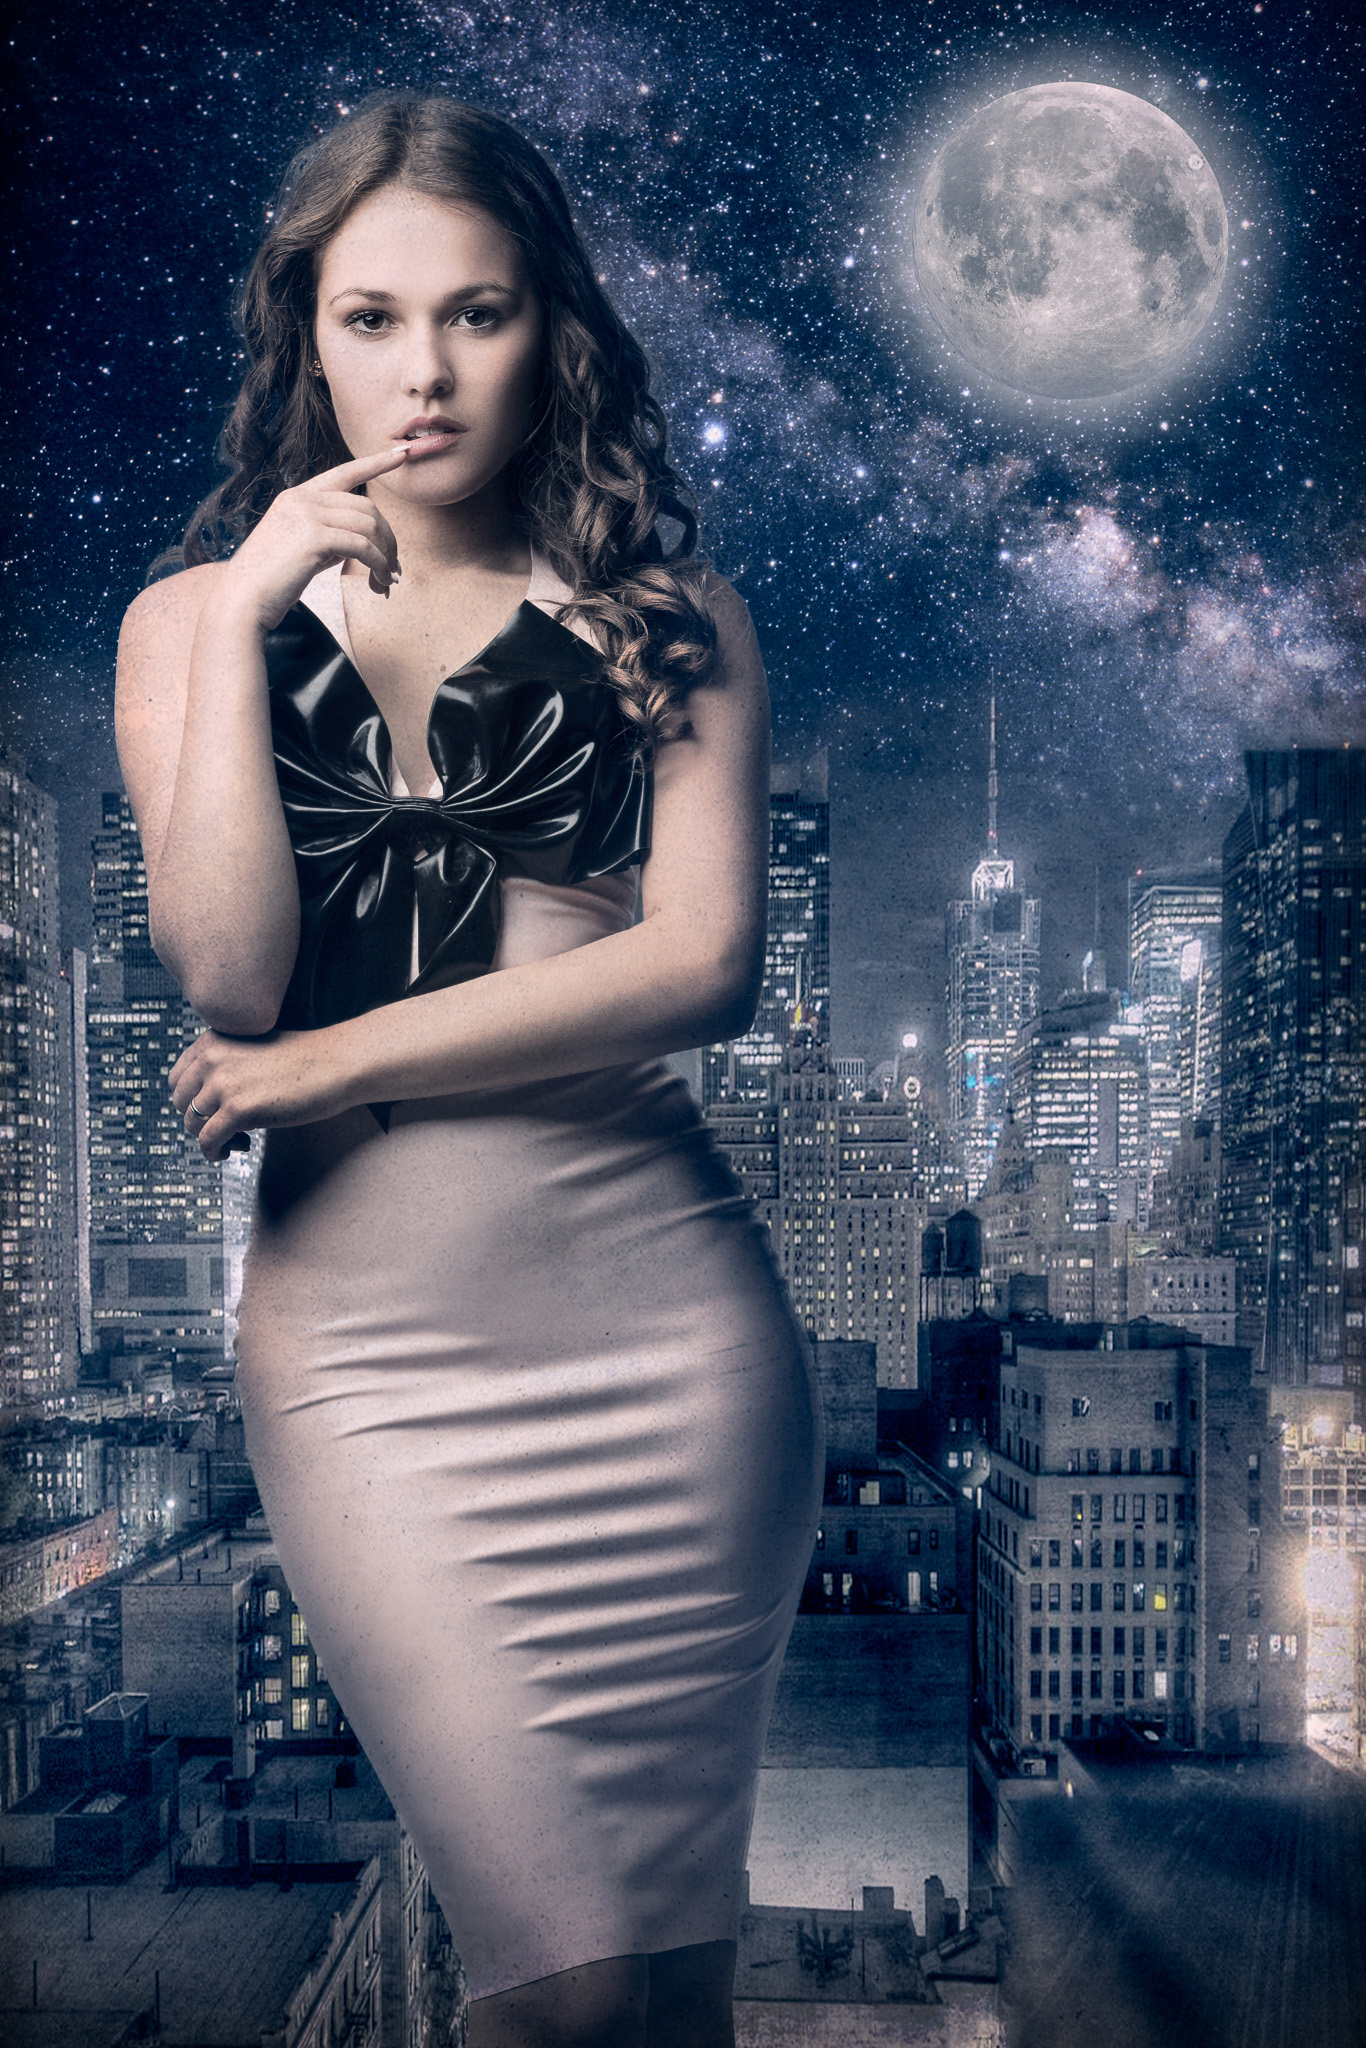 New York City Nights with Shannety in Latex